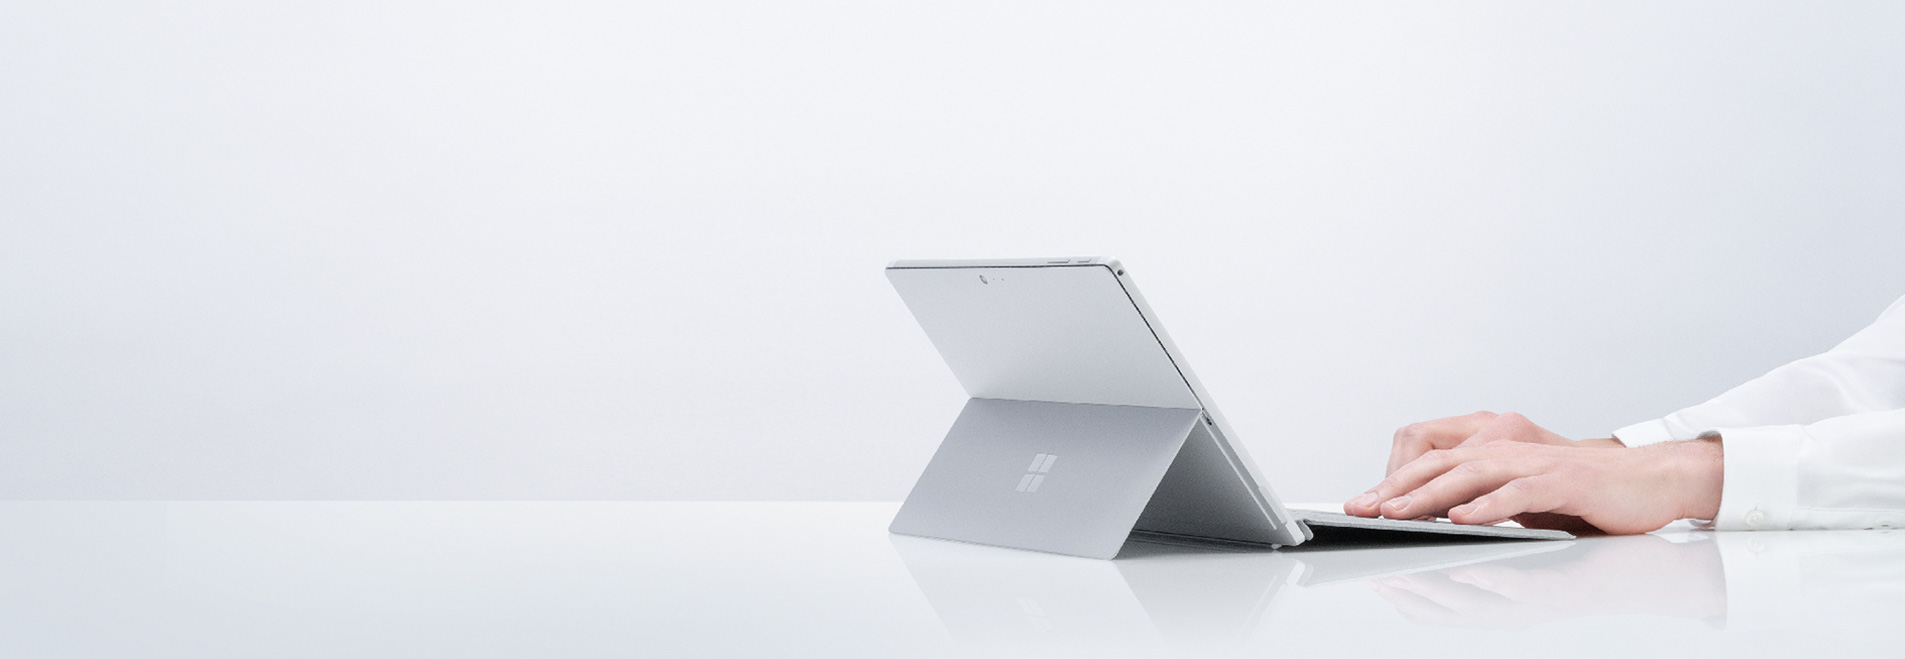 A Surface user's hands on their Surface Pro device